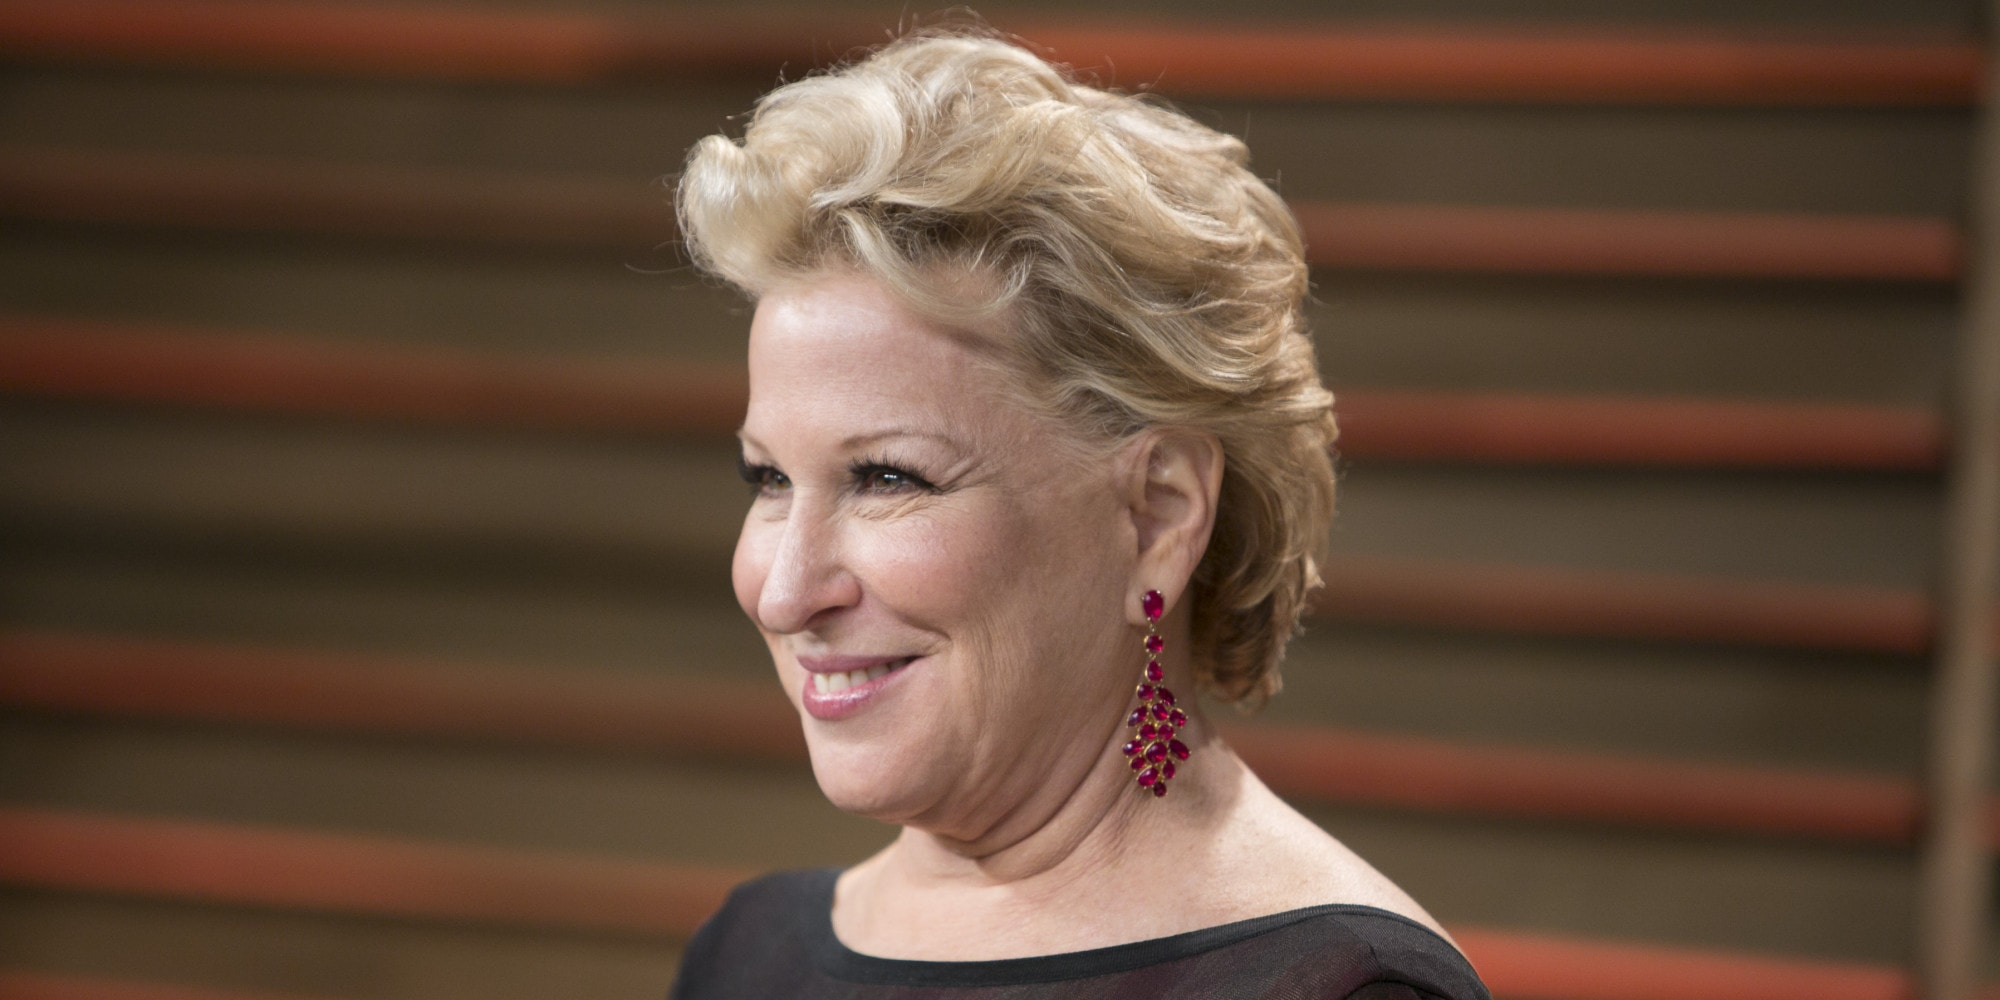 Bette Midler Full hd wallpapers